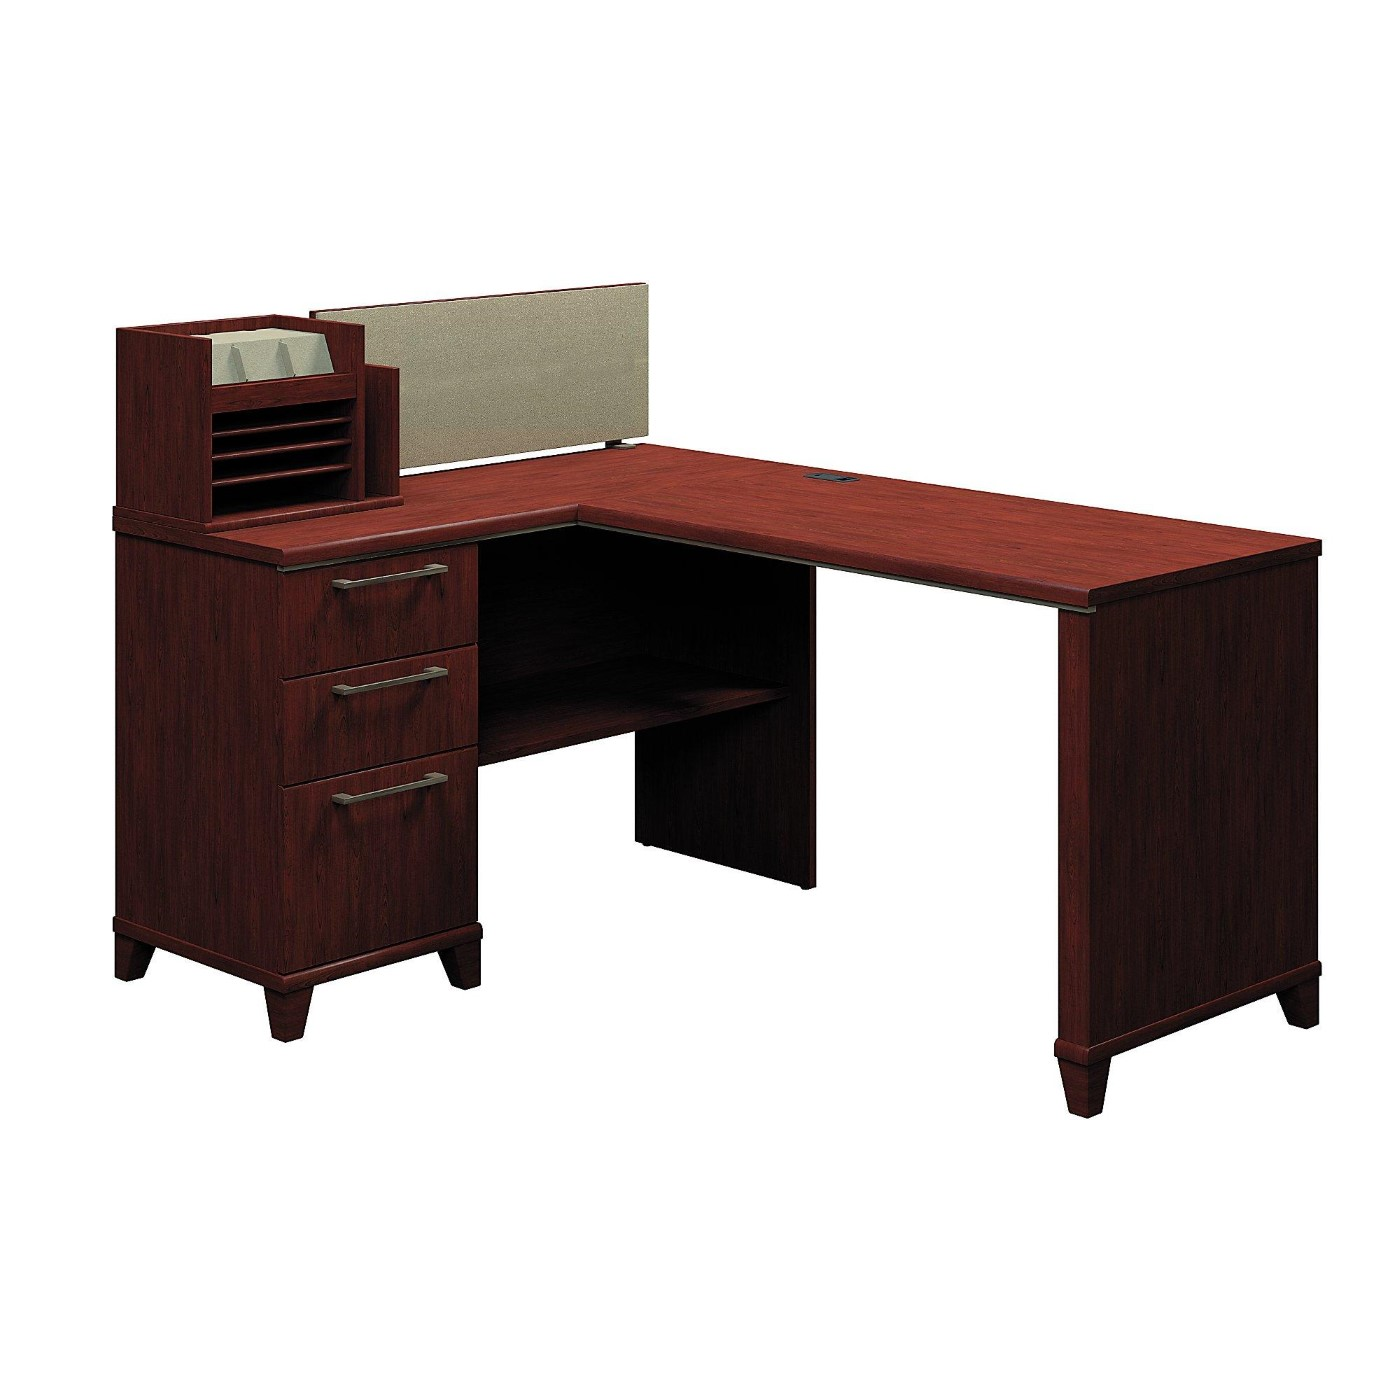 BUSH BUSINESS FURNITURE ENTERPRISE 60W X 47D CORNER DESK. FREE SHIPPING</font></b></font></b>&#x1F384<font color=red><b>ERGONOMICHOME HOLIDAY SALE - ENDS DEC. 17, 2019</b></font>&#x1F384